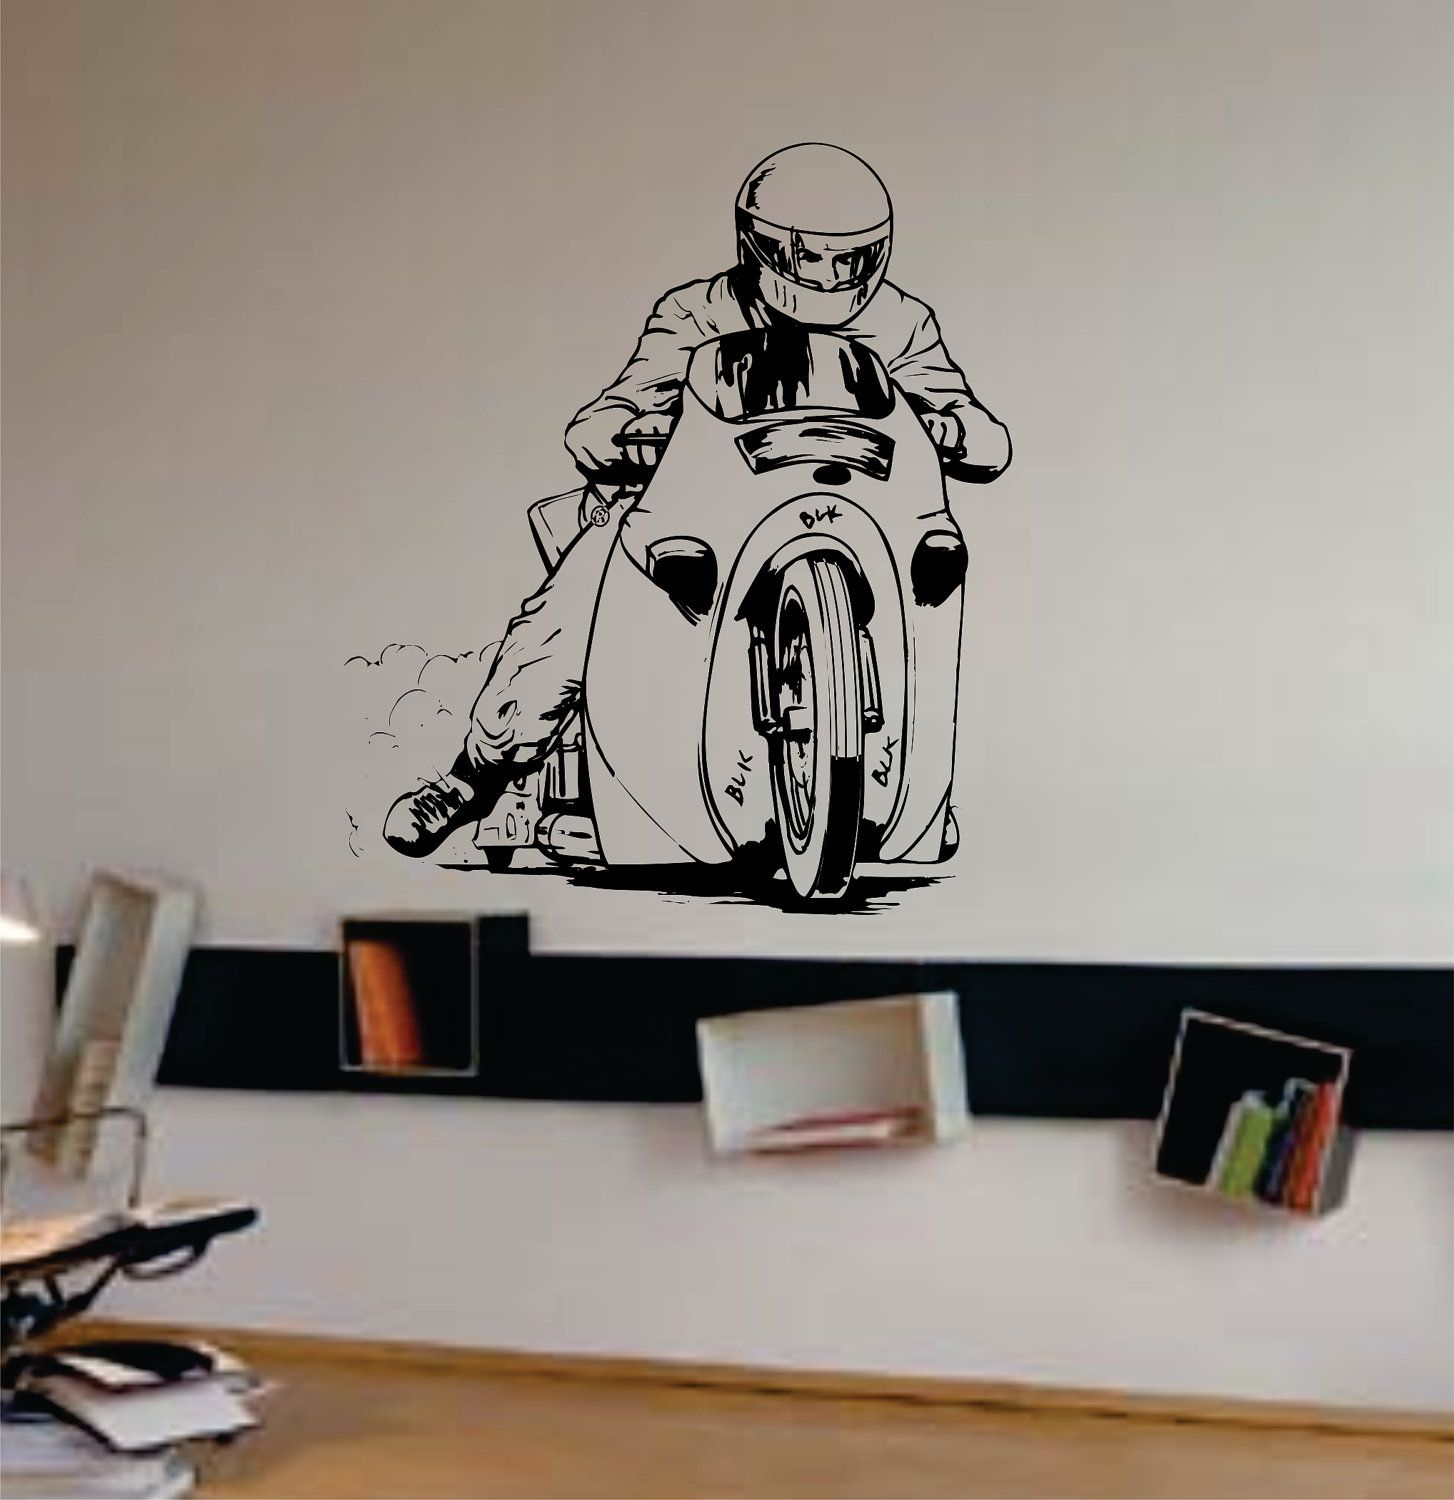 Removable wall art graphic - Dragster Bike Decal Sticker Wall Art Graphic Race By Dabbledown 28 00